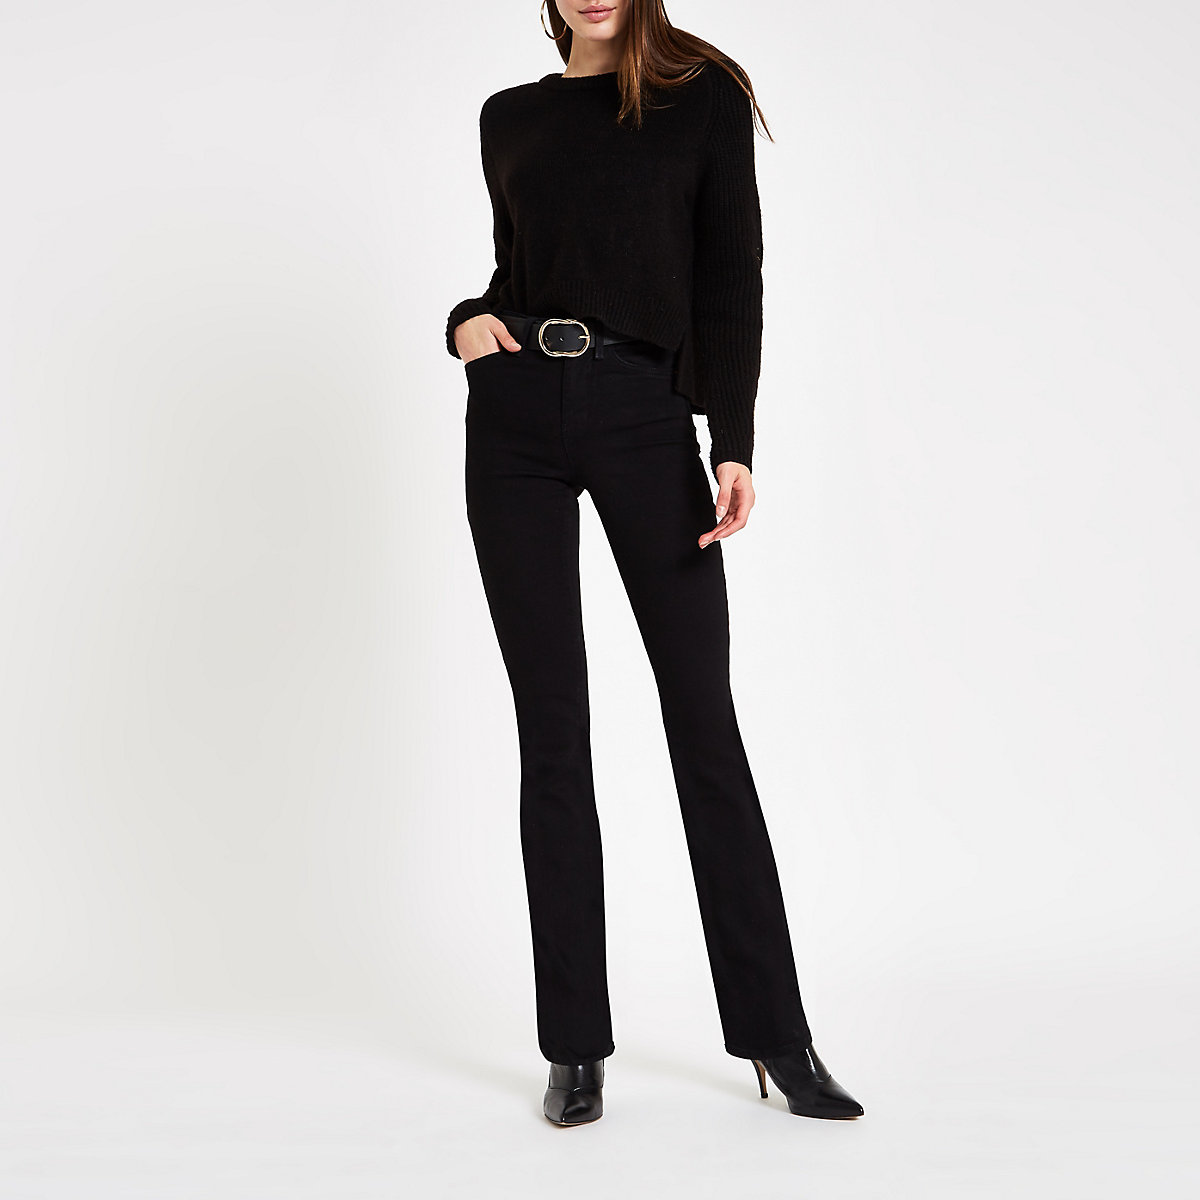 Black high rise bootcut flare jeans